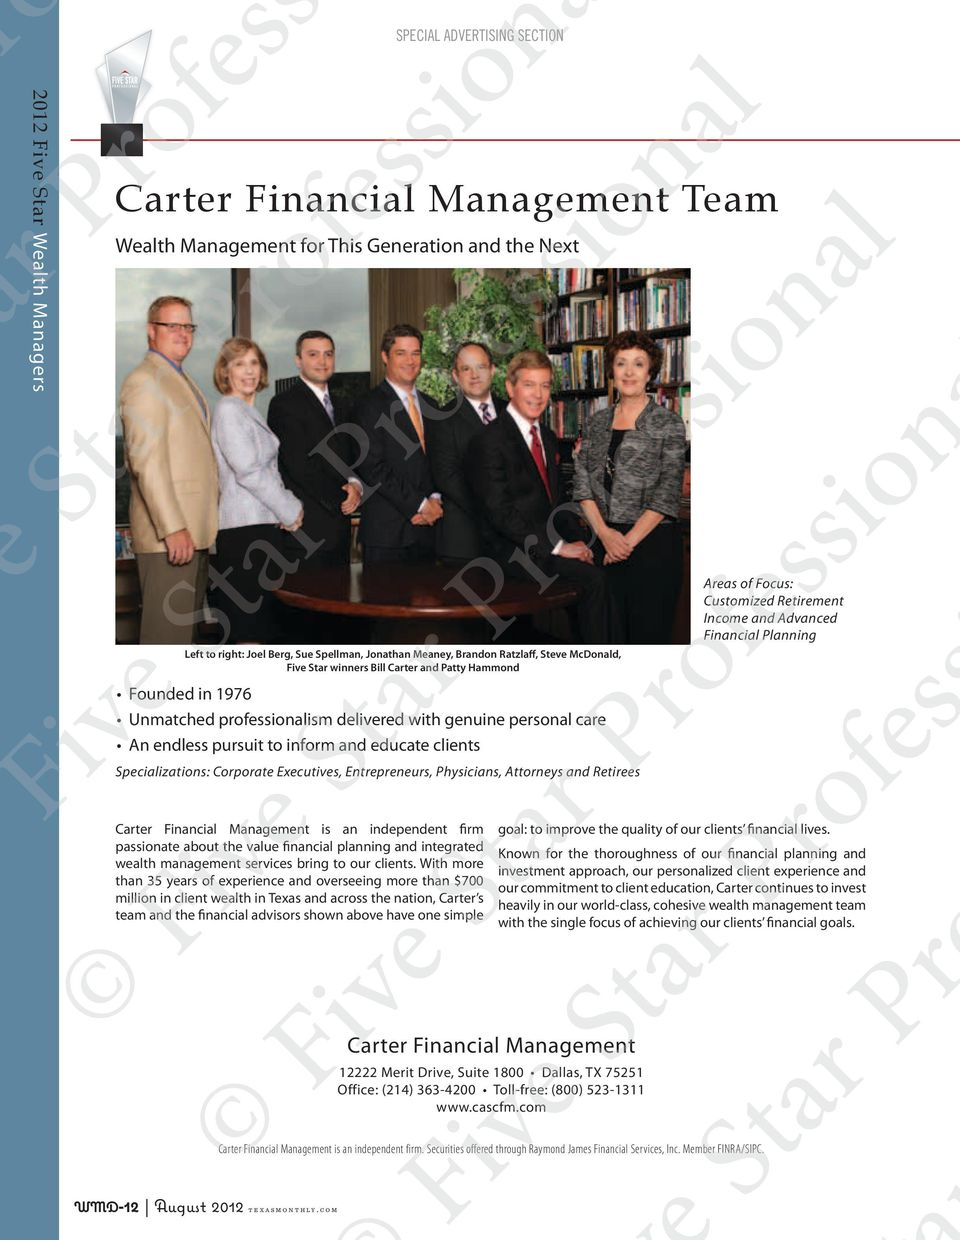 Bill Carter and Patty Hammond Founded in 1976 Unmatched professionalism delivered with genuine personal care An endless pursuit to inform and educate clients Specializations: Corporate Executives,